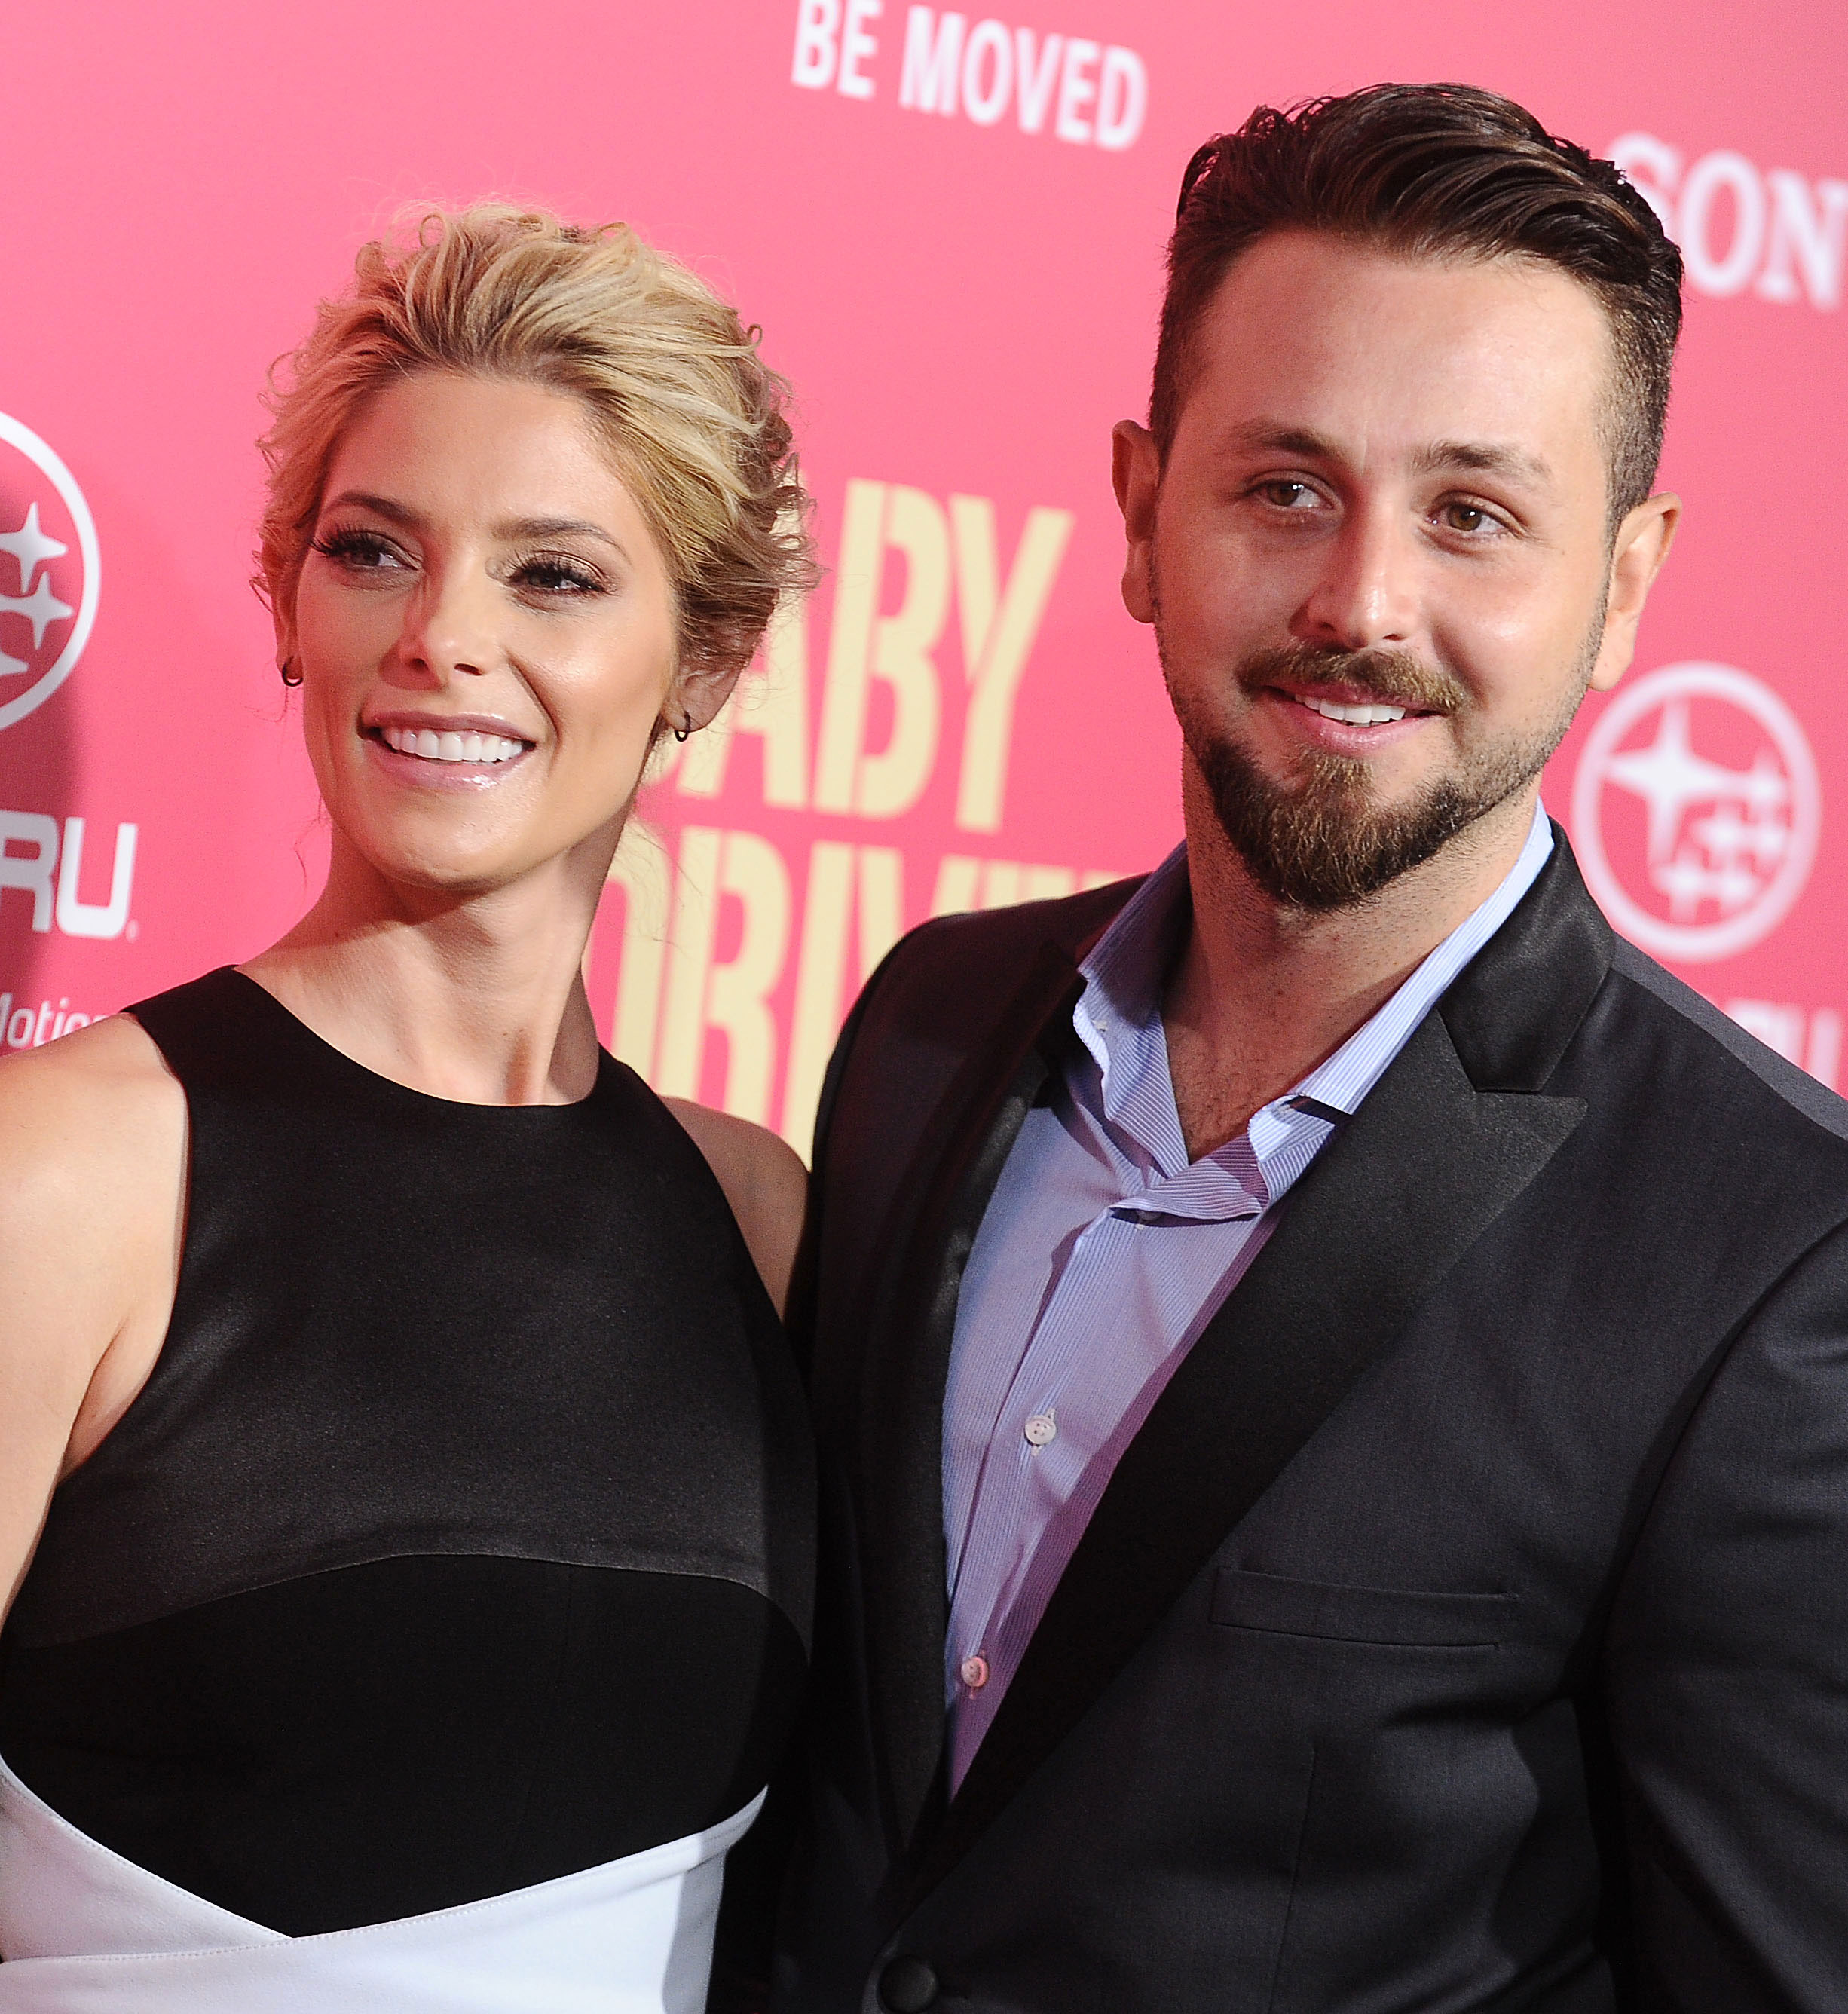 """Ashley Greene Gushes About Married Life: 'It's Been Really Wonderful' - Ashley Greene and Paul Khoury at the premiere of """"Baby Driver"""" on June 14, 2017 in Los Angeles, California. (Photo by Jason LaVeris/FilmMagic)"""